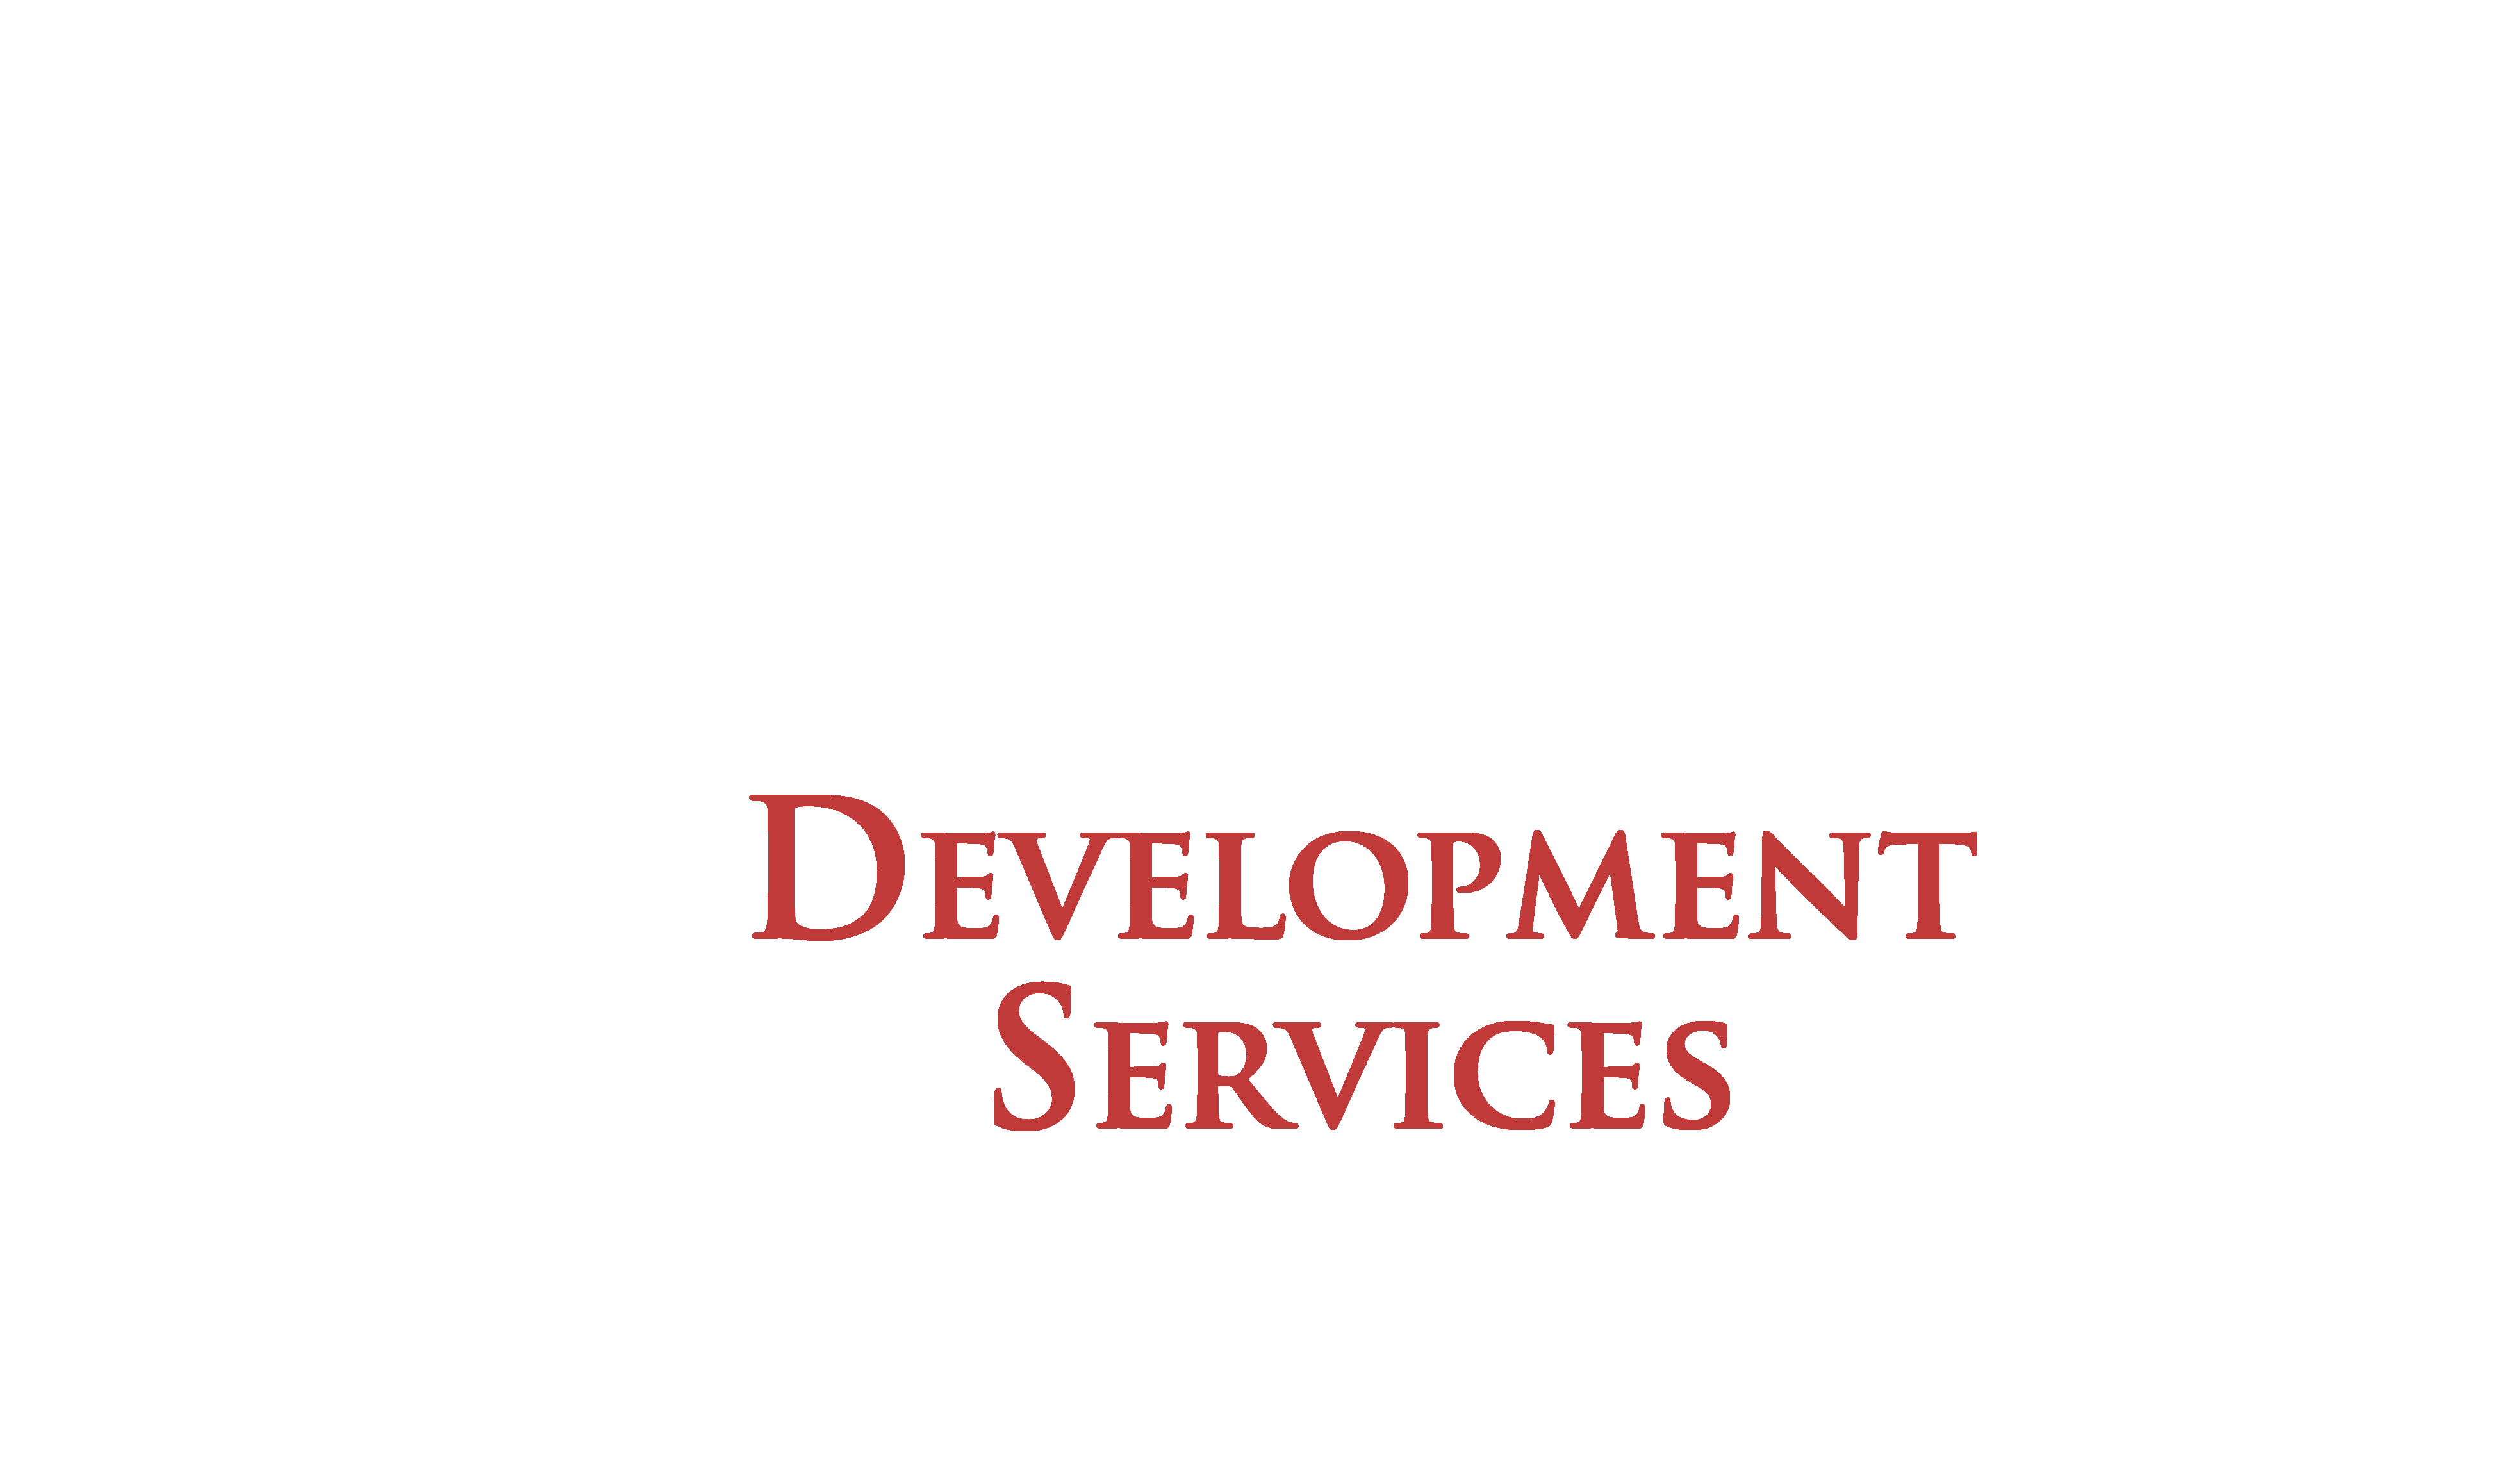 Gulf States Development Services